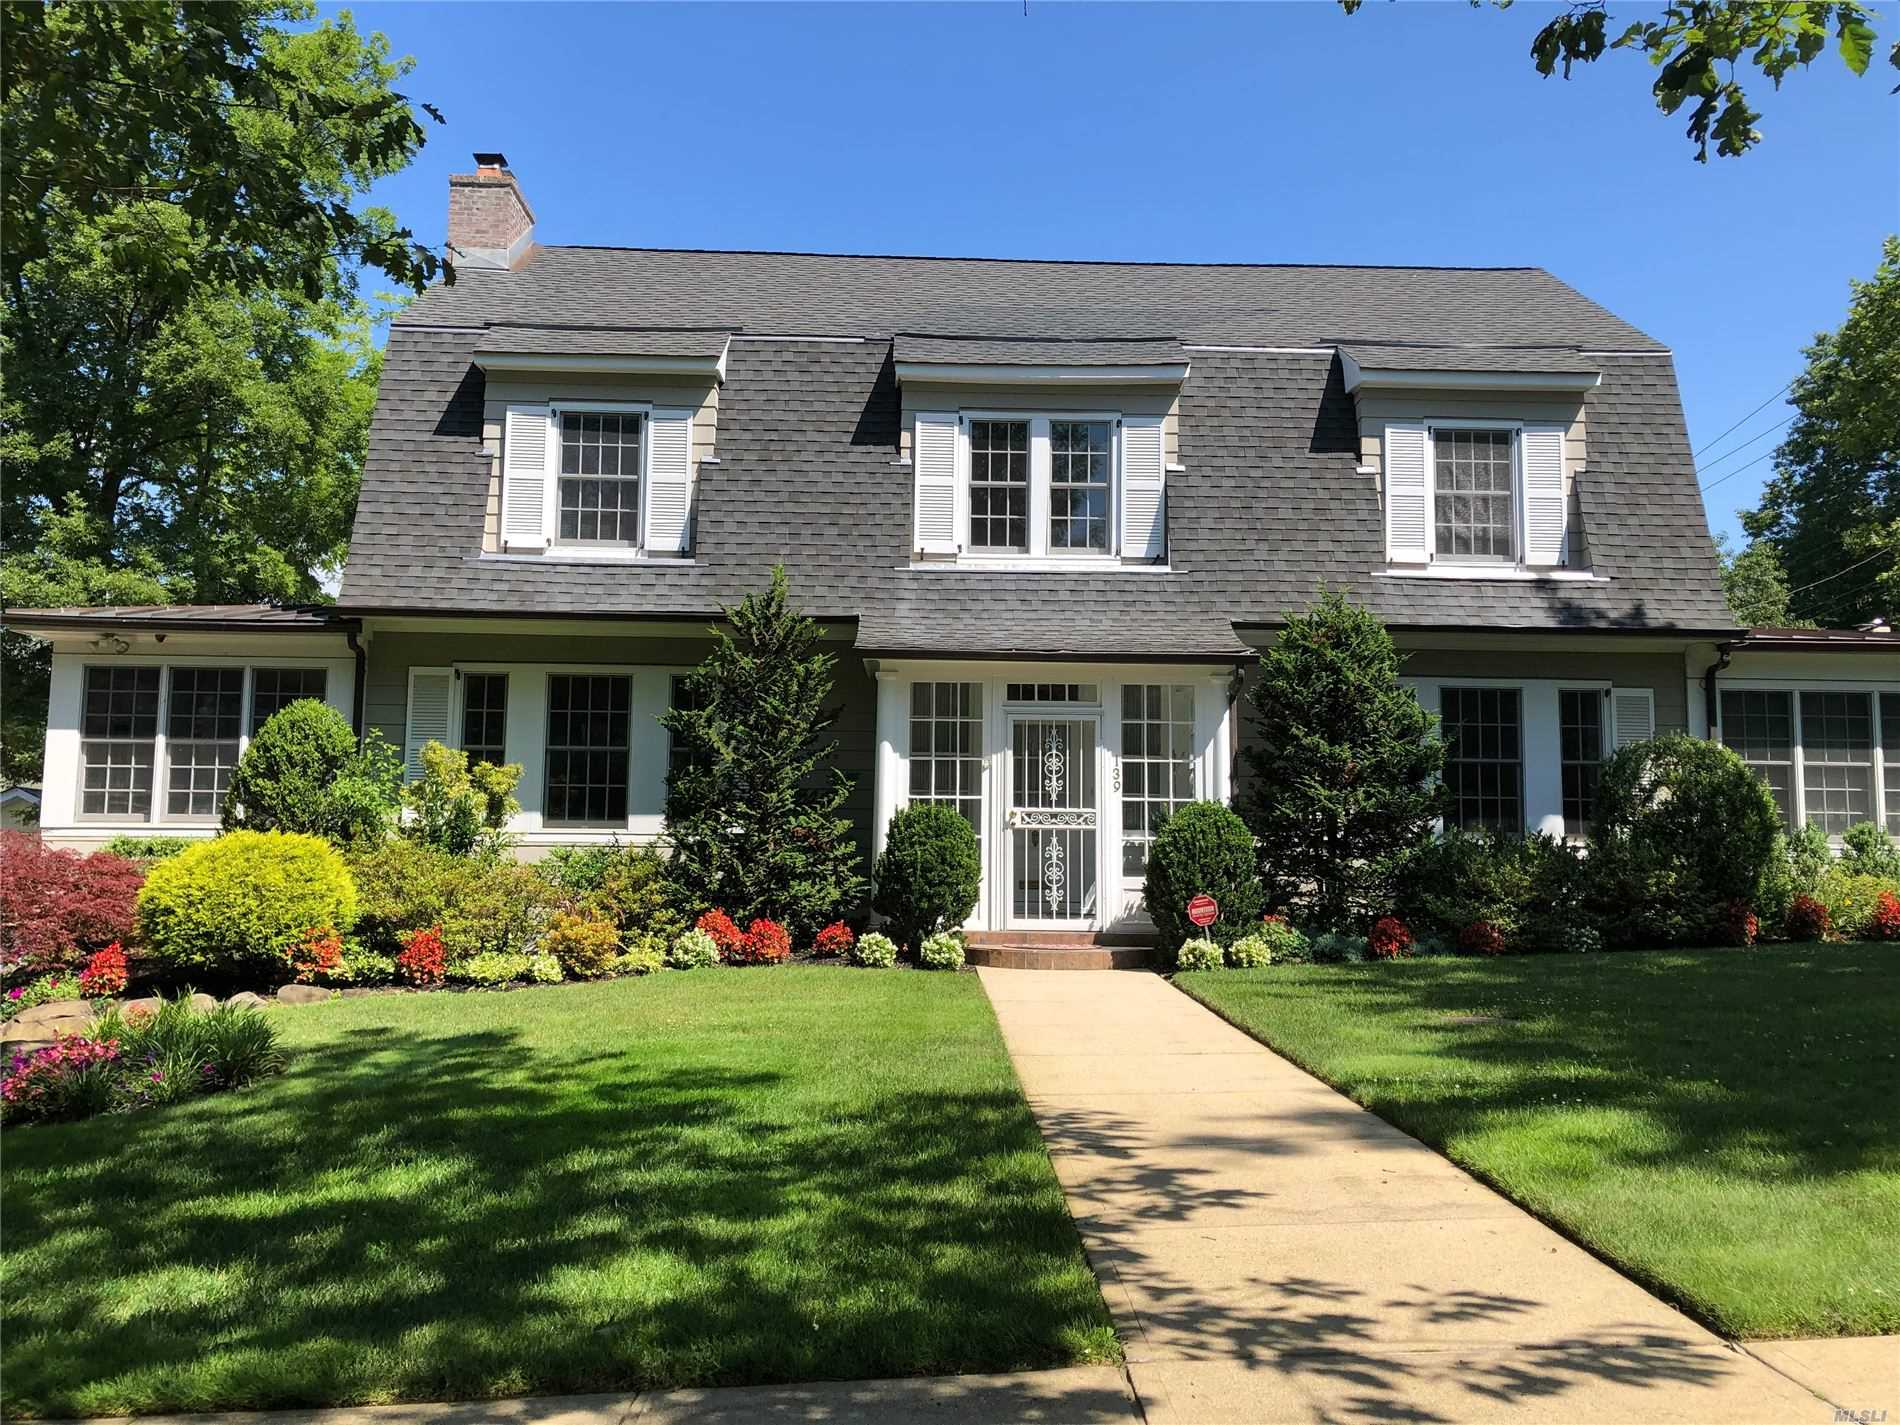 Beautiful Colonial Custom-built in 2008 boasts: 6 bedrooms ( 3 featuring ensuites) , 6 baths, Gourmet EIK w/ Gas Cooking, FDR, FLR w/ Fireplace, High Ceilings w/ Beautiful Molding on main floor, Hardwood floors thru out, 4, 565 sq ft interiors. Backup Generator for whole house. Enjoy Everything The Douglaston Manor Lifestyle Has To Offer! Easy 30 Minutes Commute To NYC.